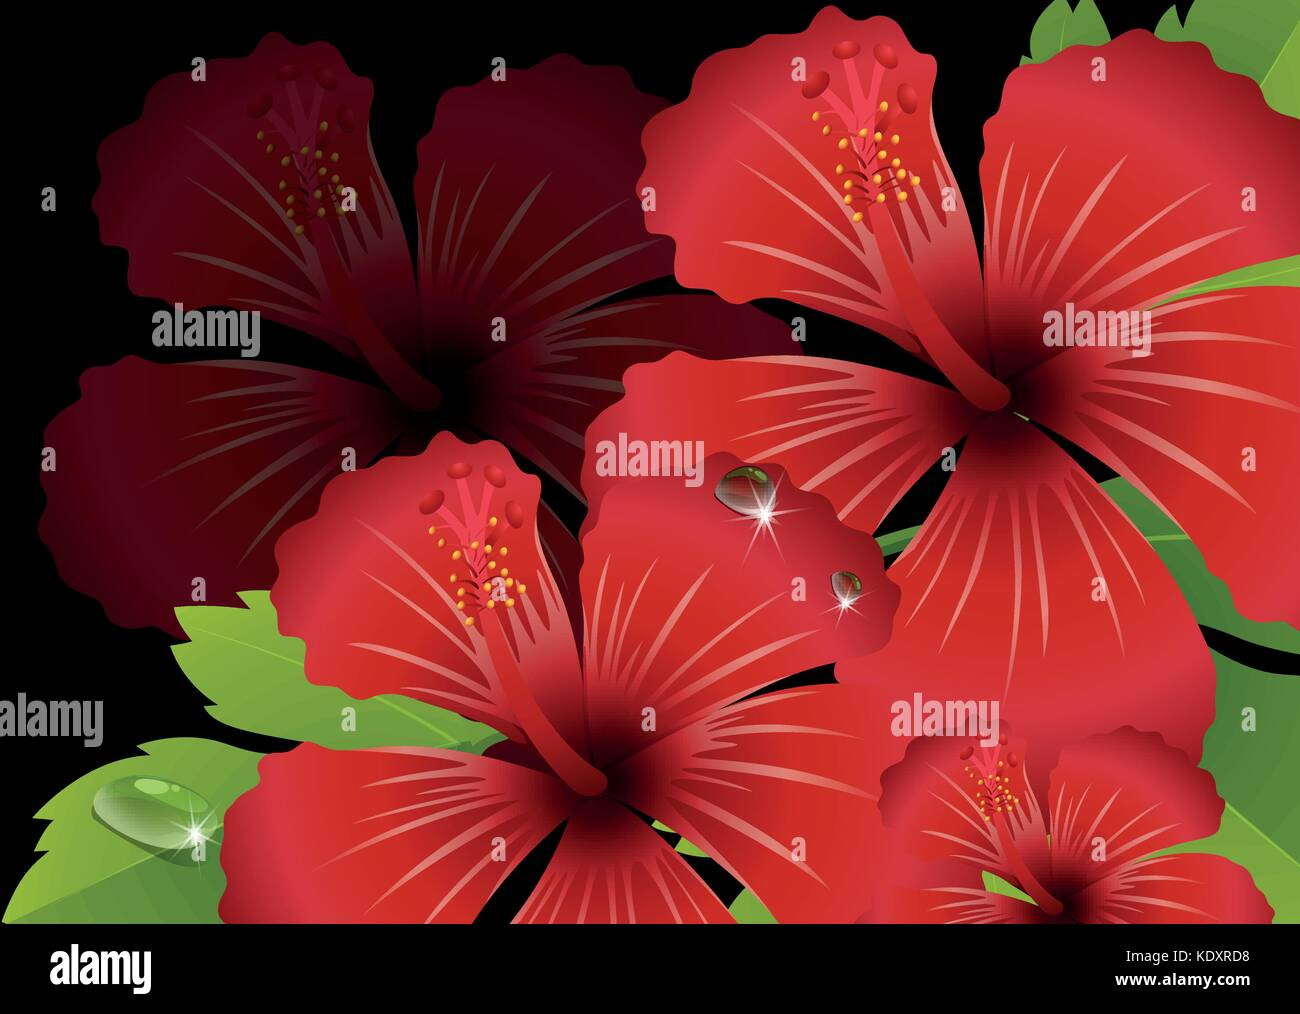 Hibiscus flowers stock vector images alamy red hibiscus flowers with black background illustration stock vector izmirmasajfo